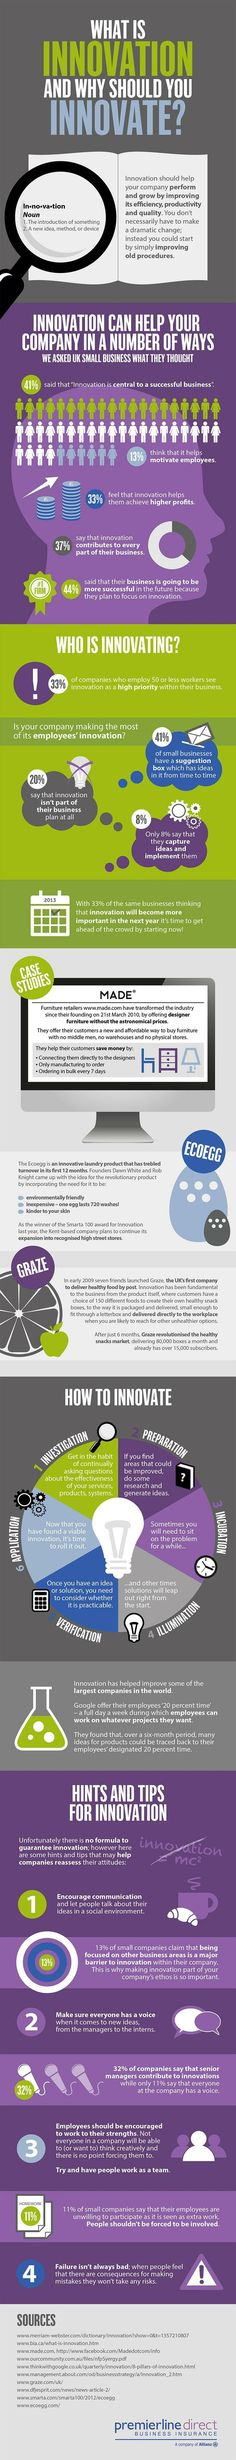 What is innovation and why should you innovate? #infografia #infographic